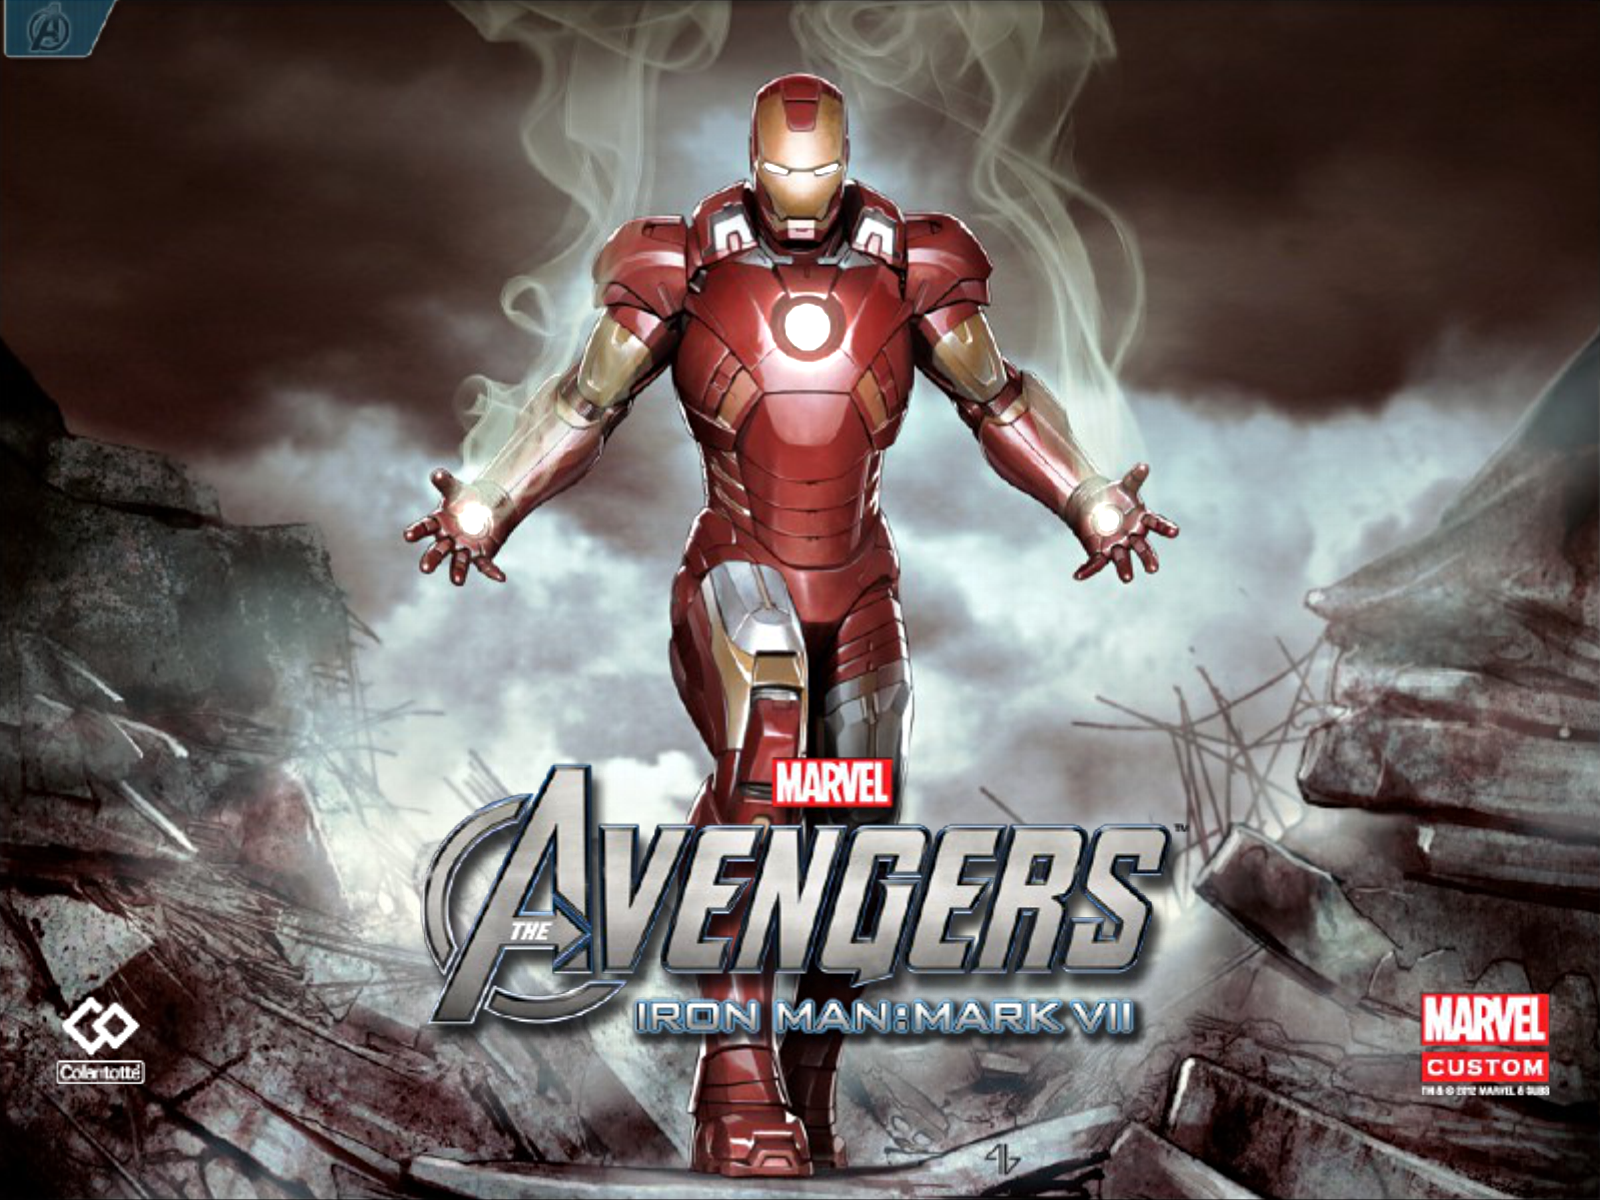 File:The Avengers Iron Man Mark VII.png